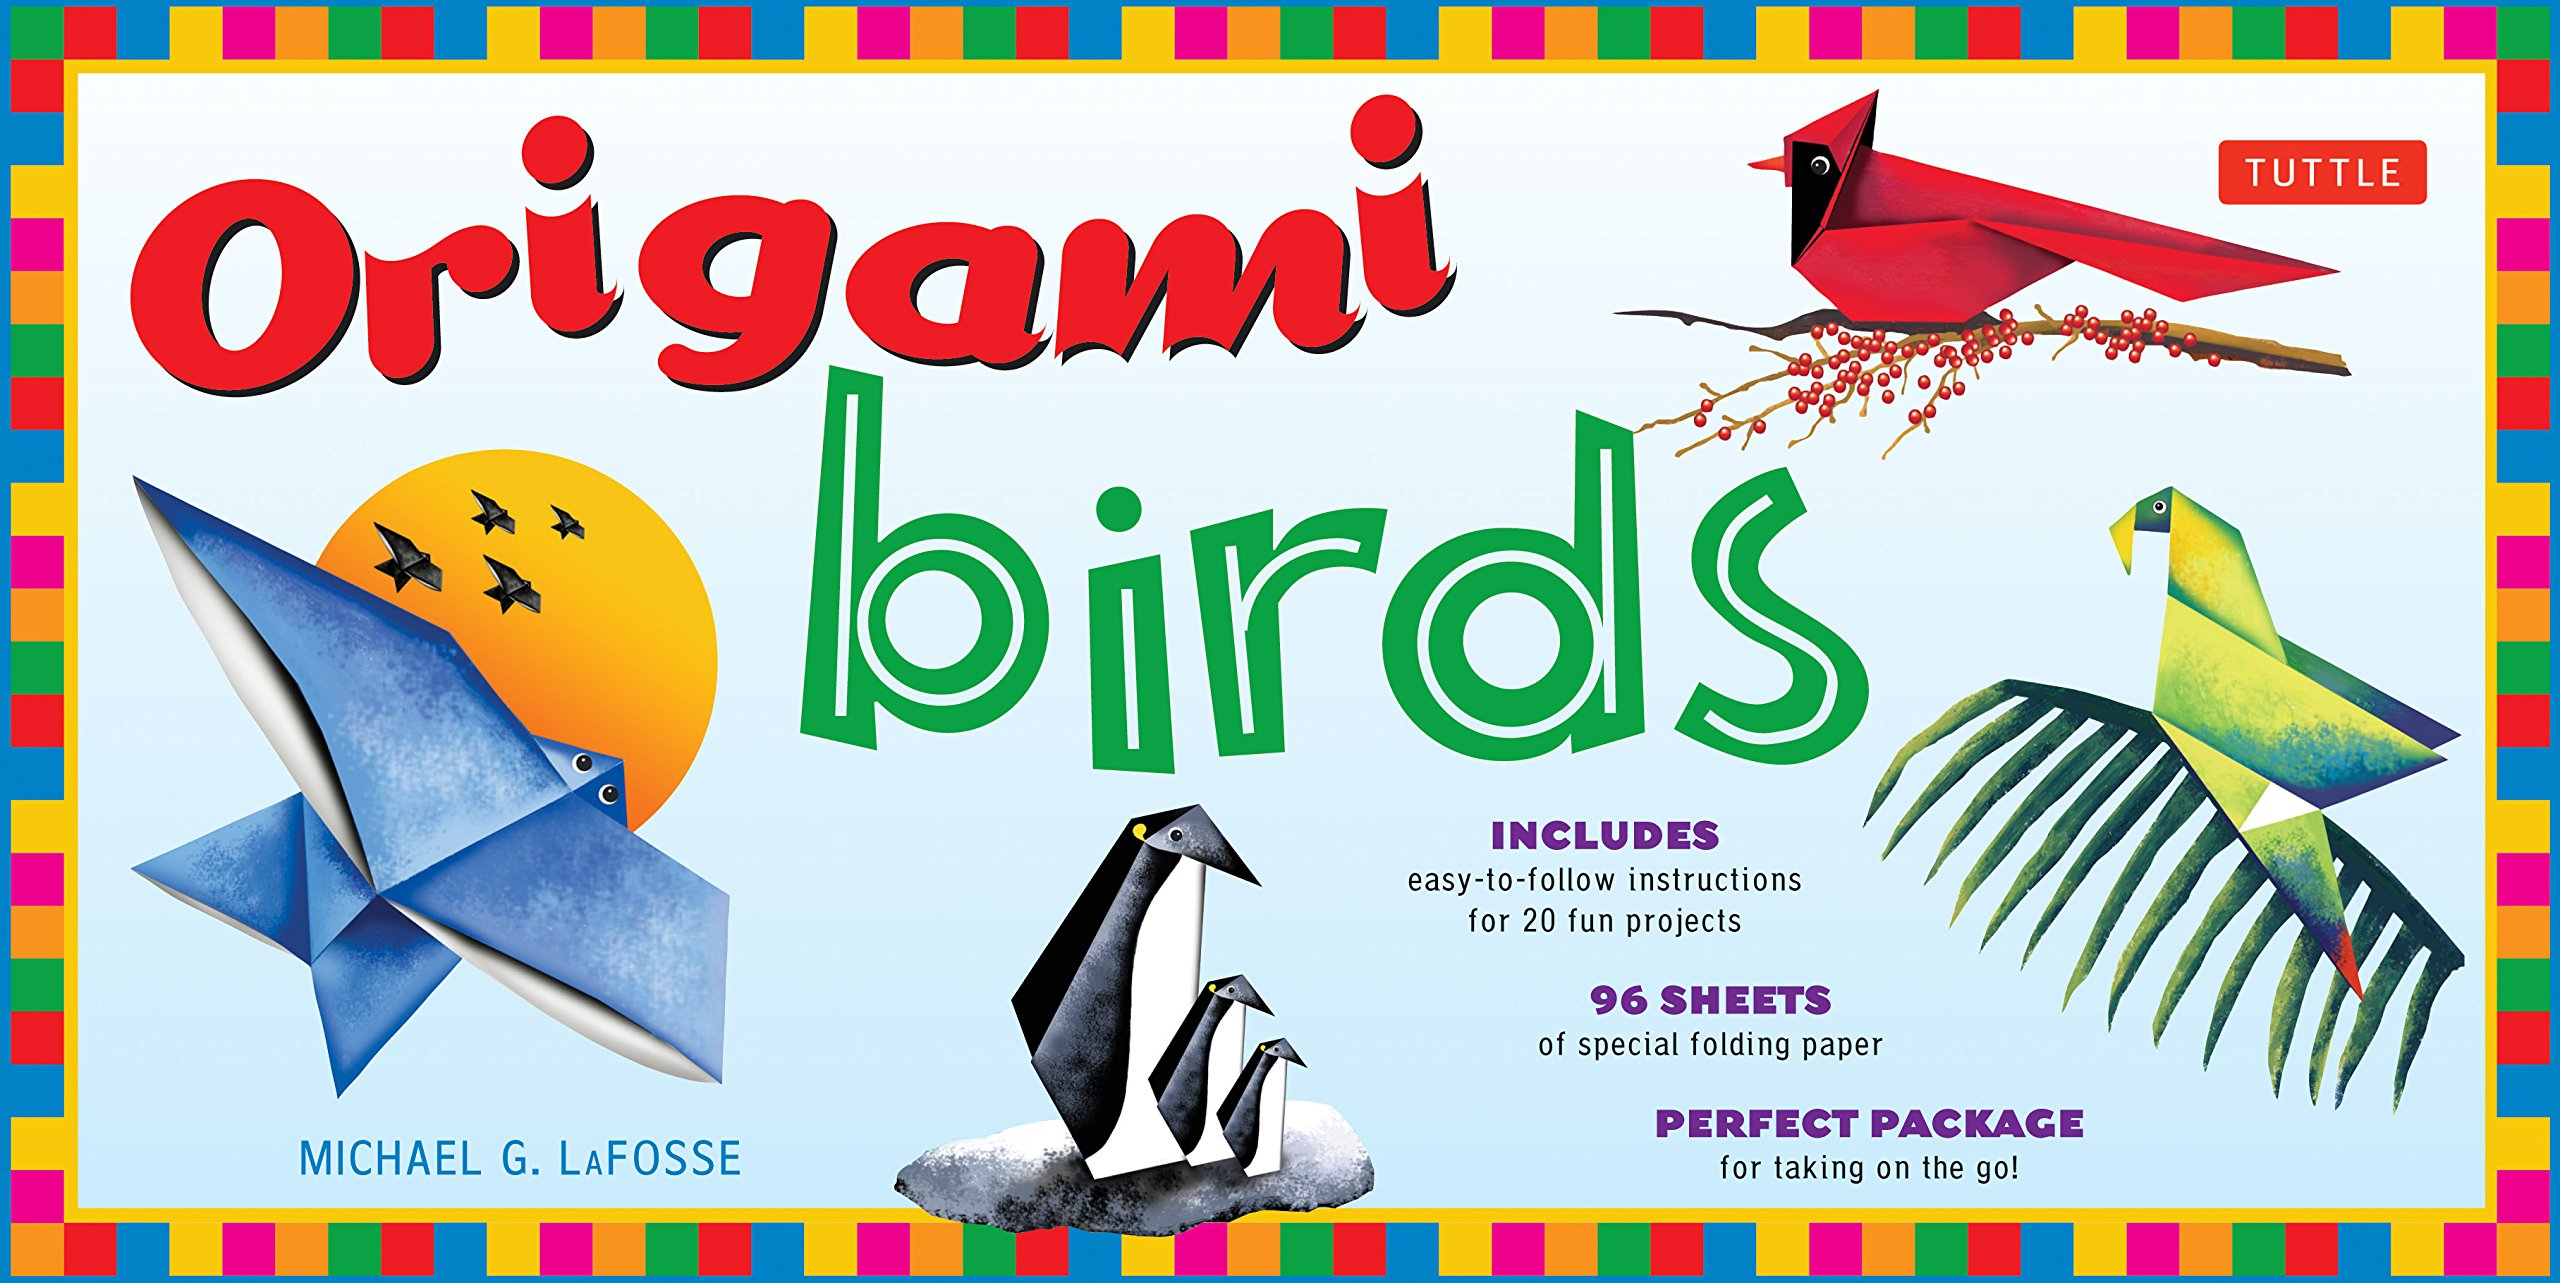 Origami Birds Kit Make Colorful With This Parrot Origamiorigami Macaw Parrotorigami Diagram Easy Includes 2 Books 20 Projects 98 High Quality